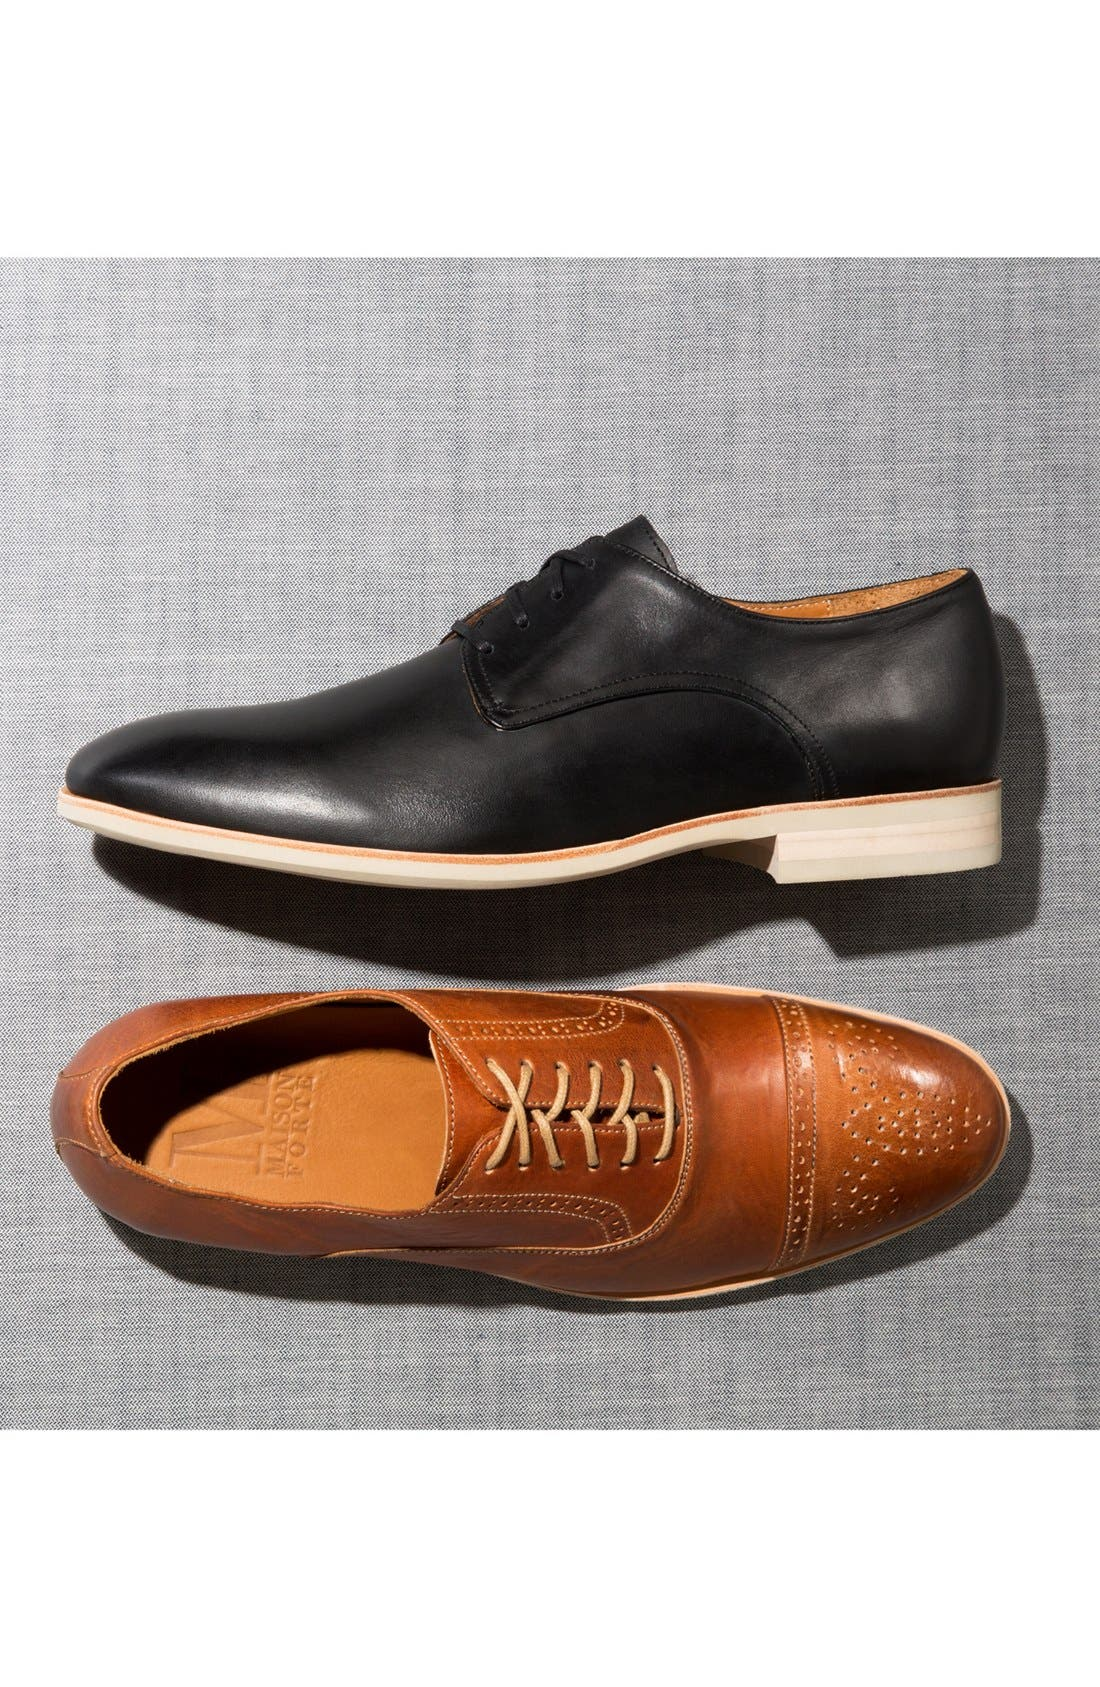 Alternate Image 5  - Maison Forte 'Cannes' Plain Toe Derby